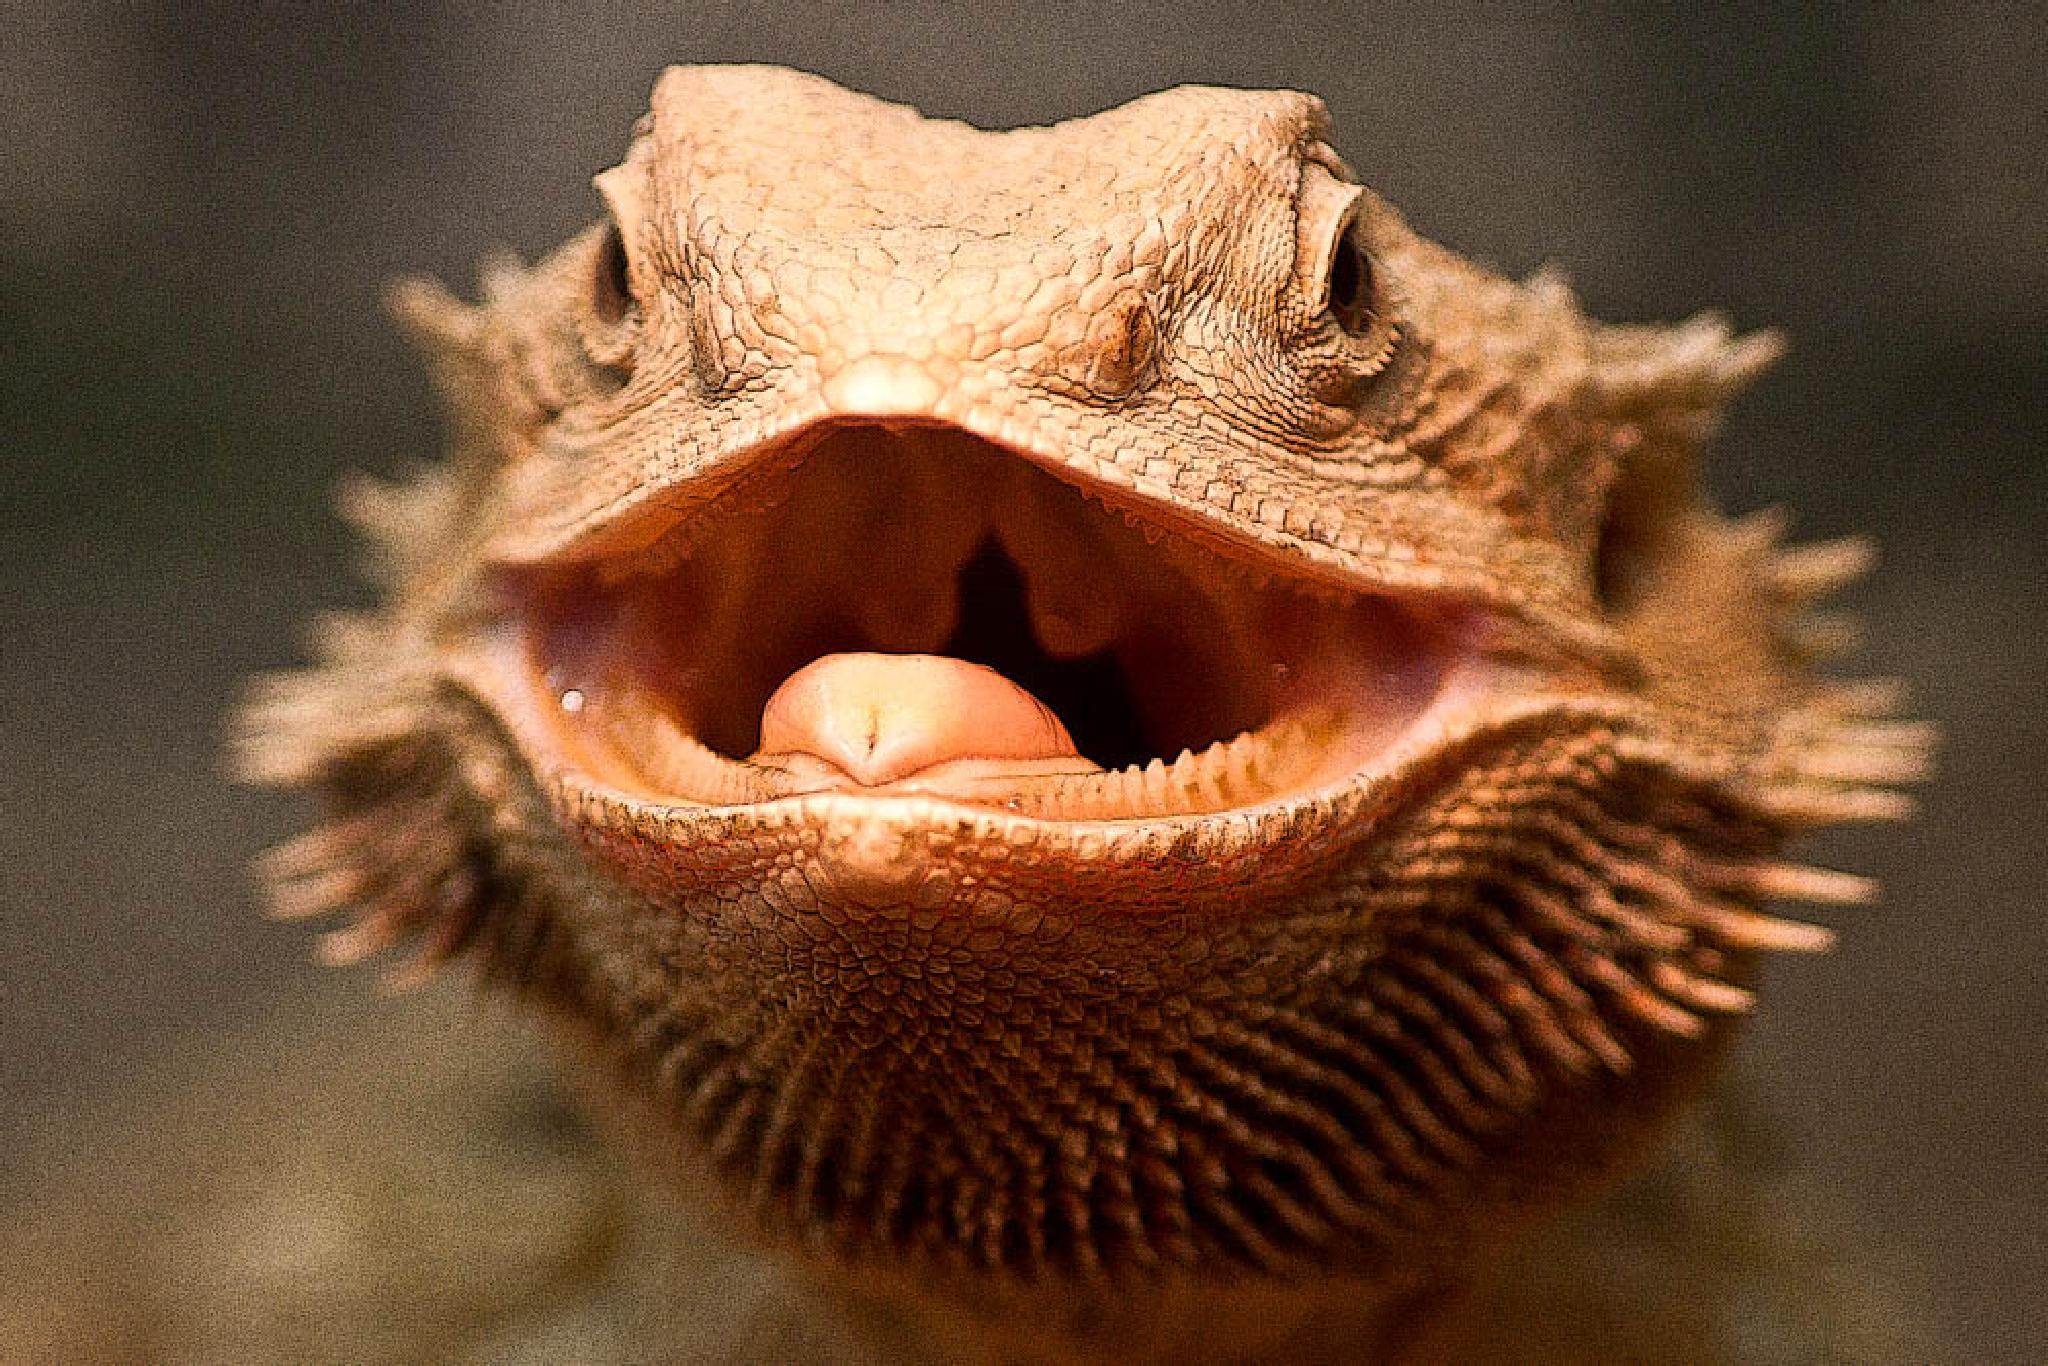 Bearded Dragon by ellobo